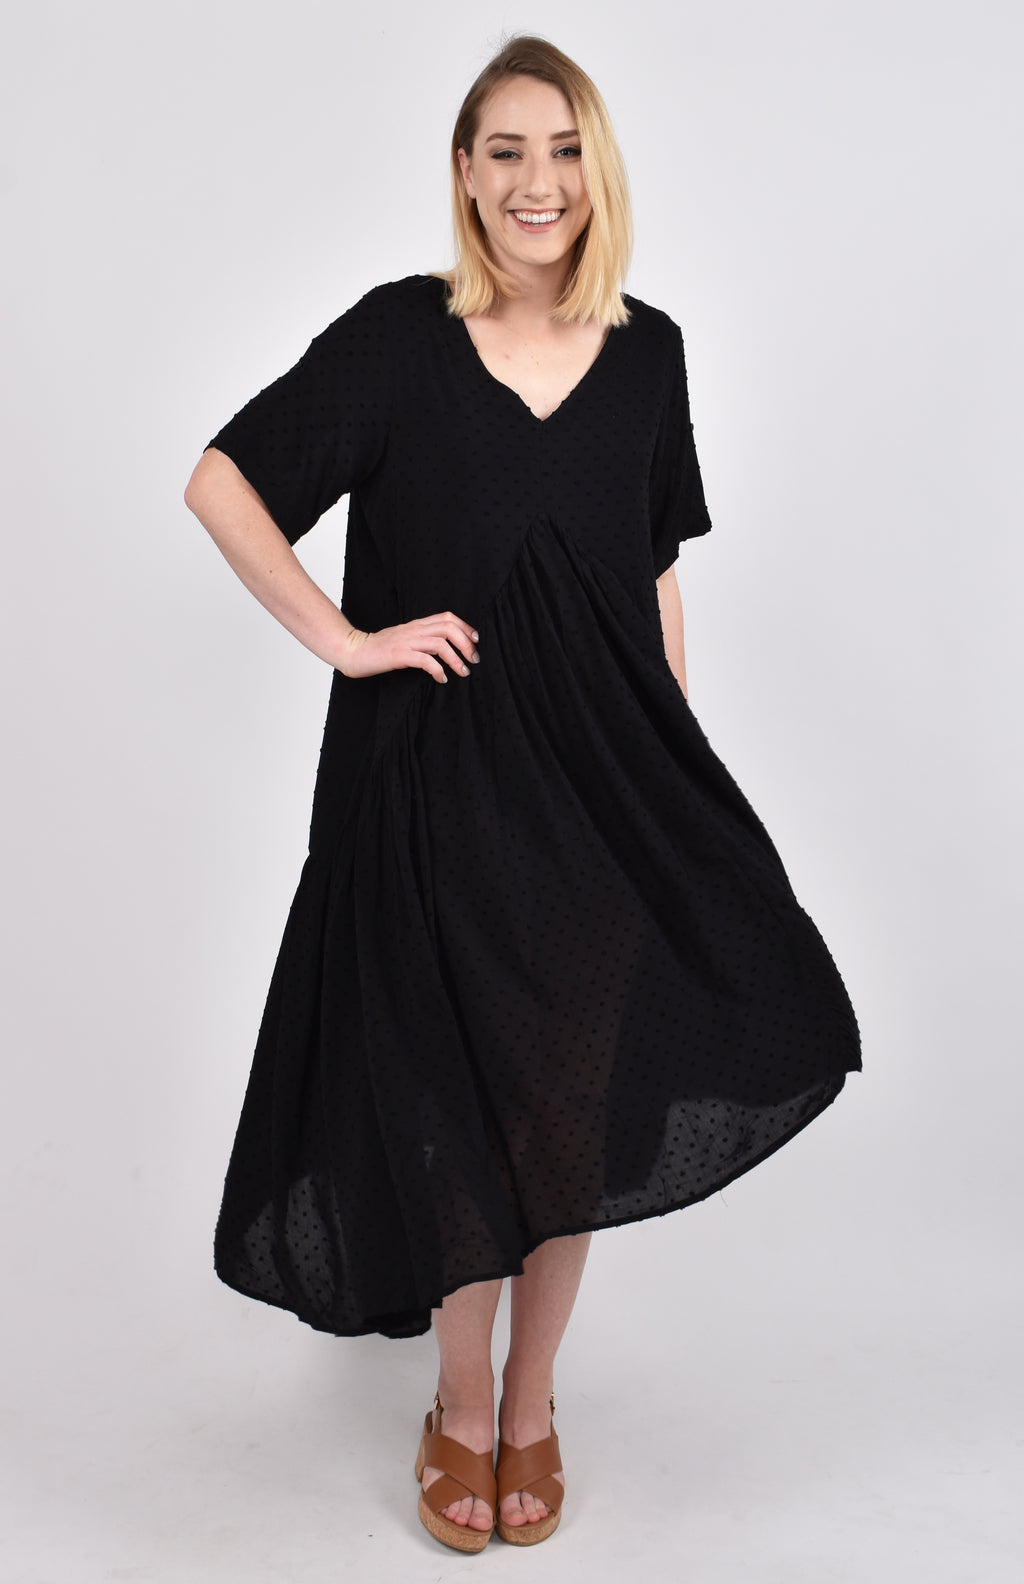 Short Sleeve Peak Maxi Dress in Black Dot